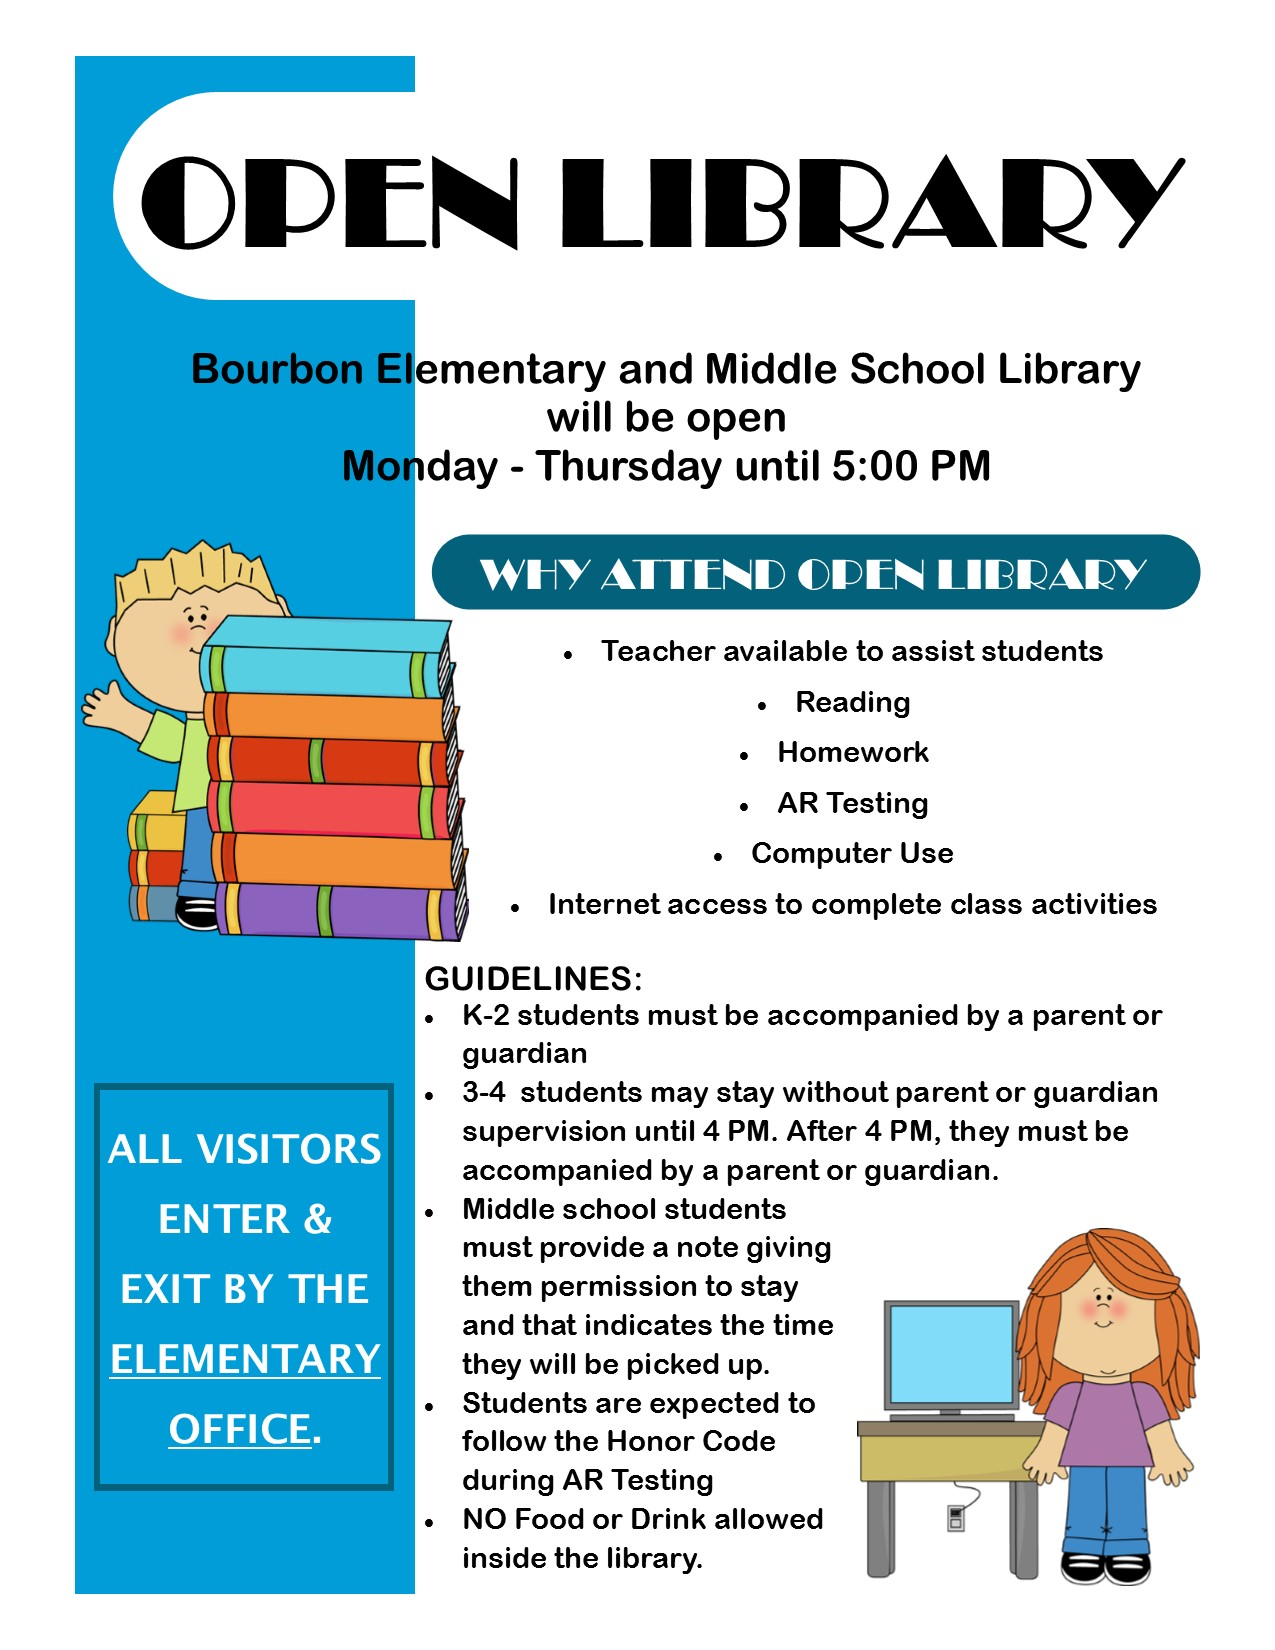 Open Library - Elementary/MS Mon-Thurs until 5:00 p.m.